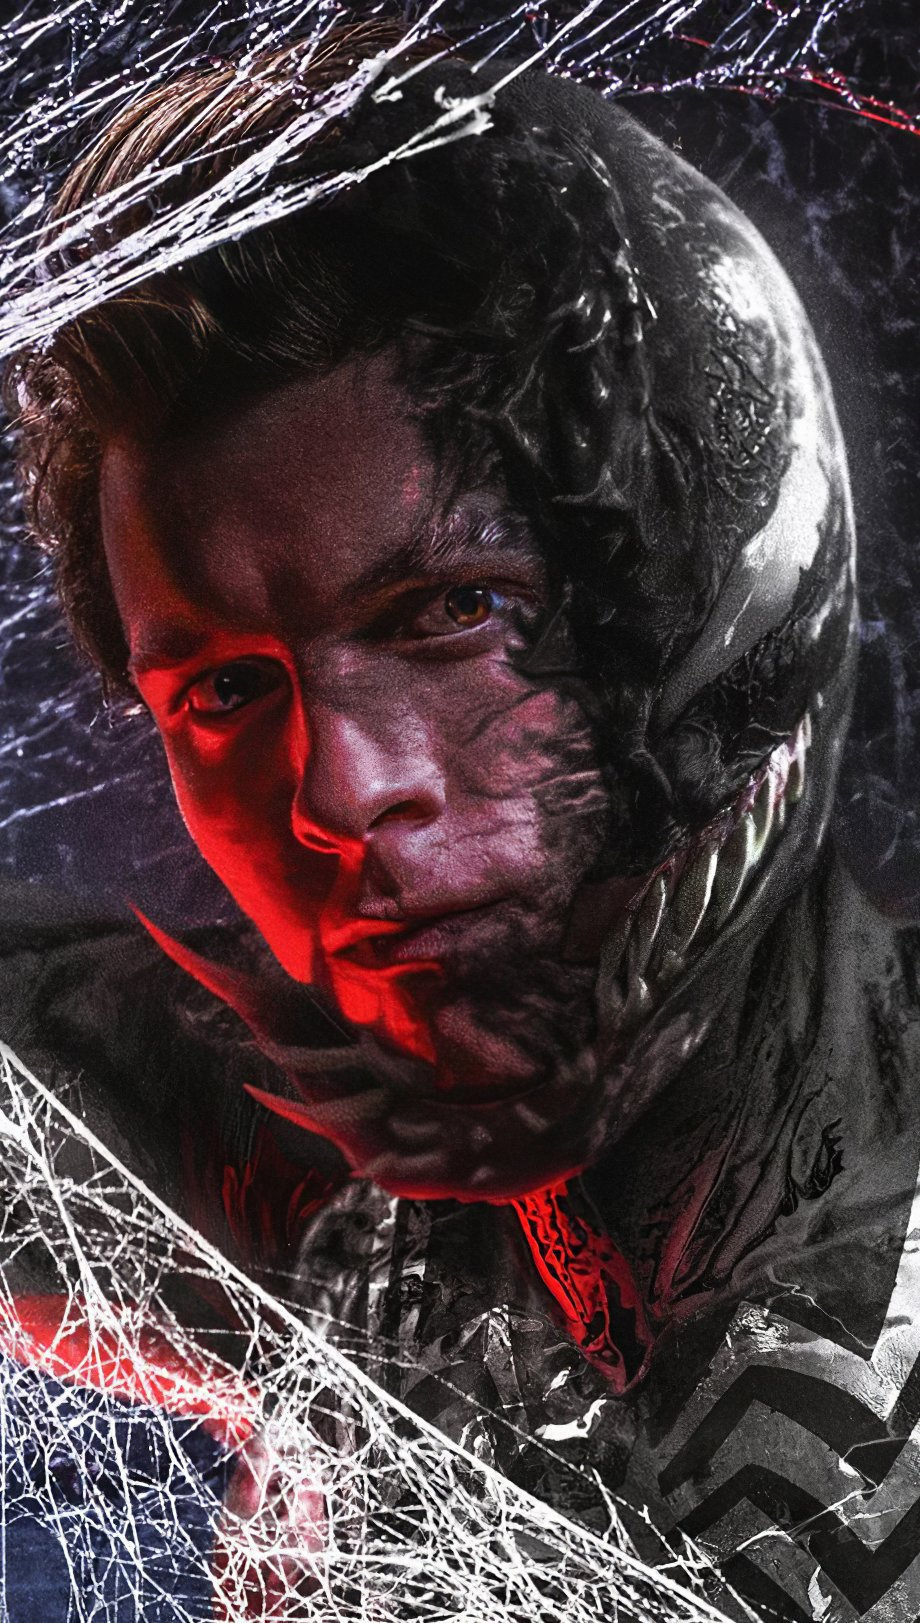 Wallpaper Venom: Let There Be Carnage Movie 2021 Vertical